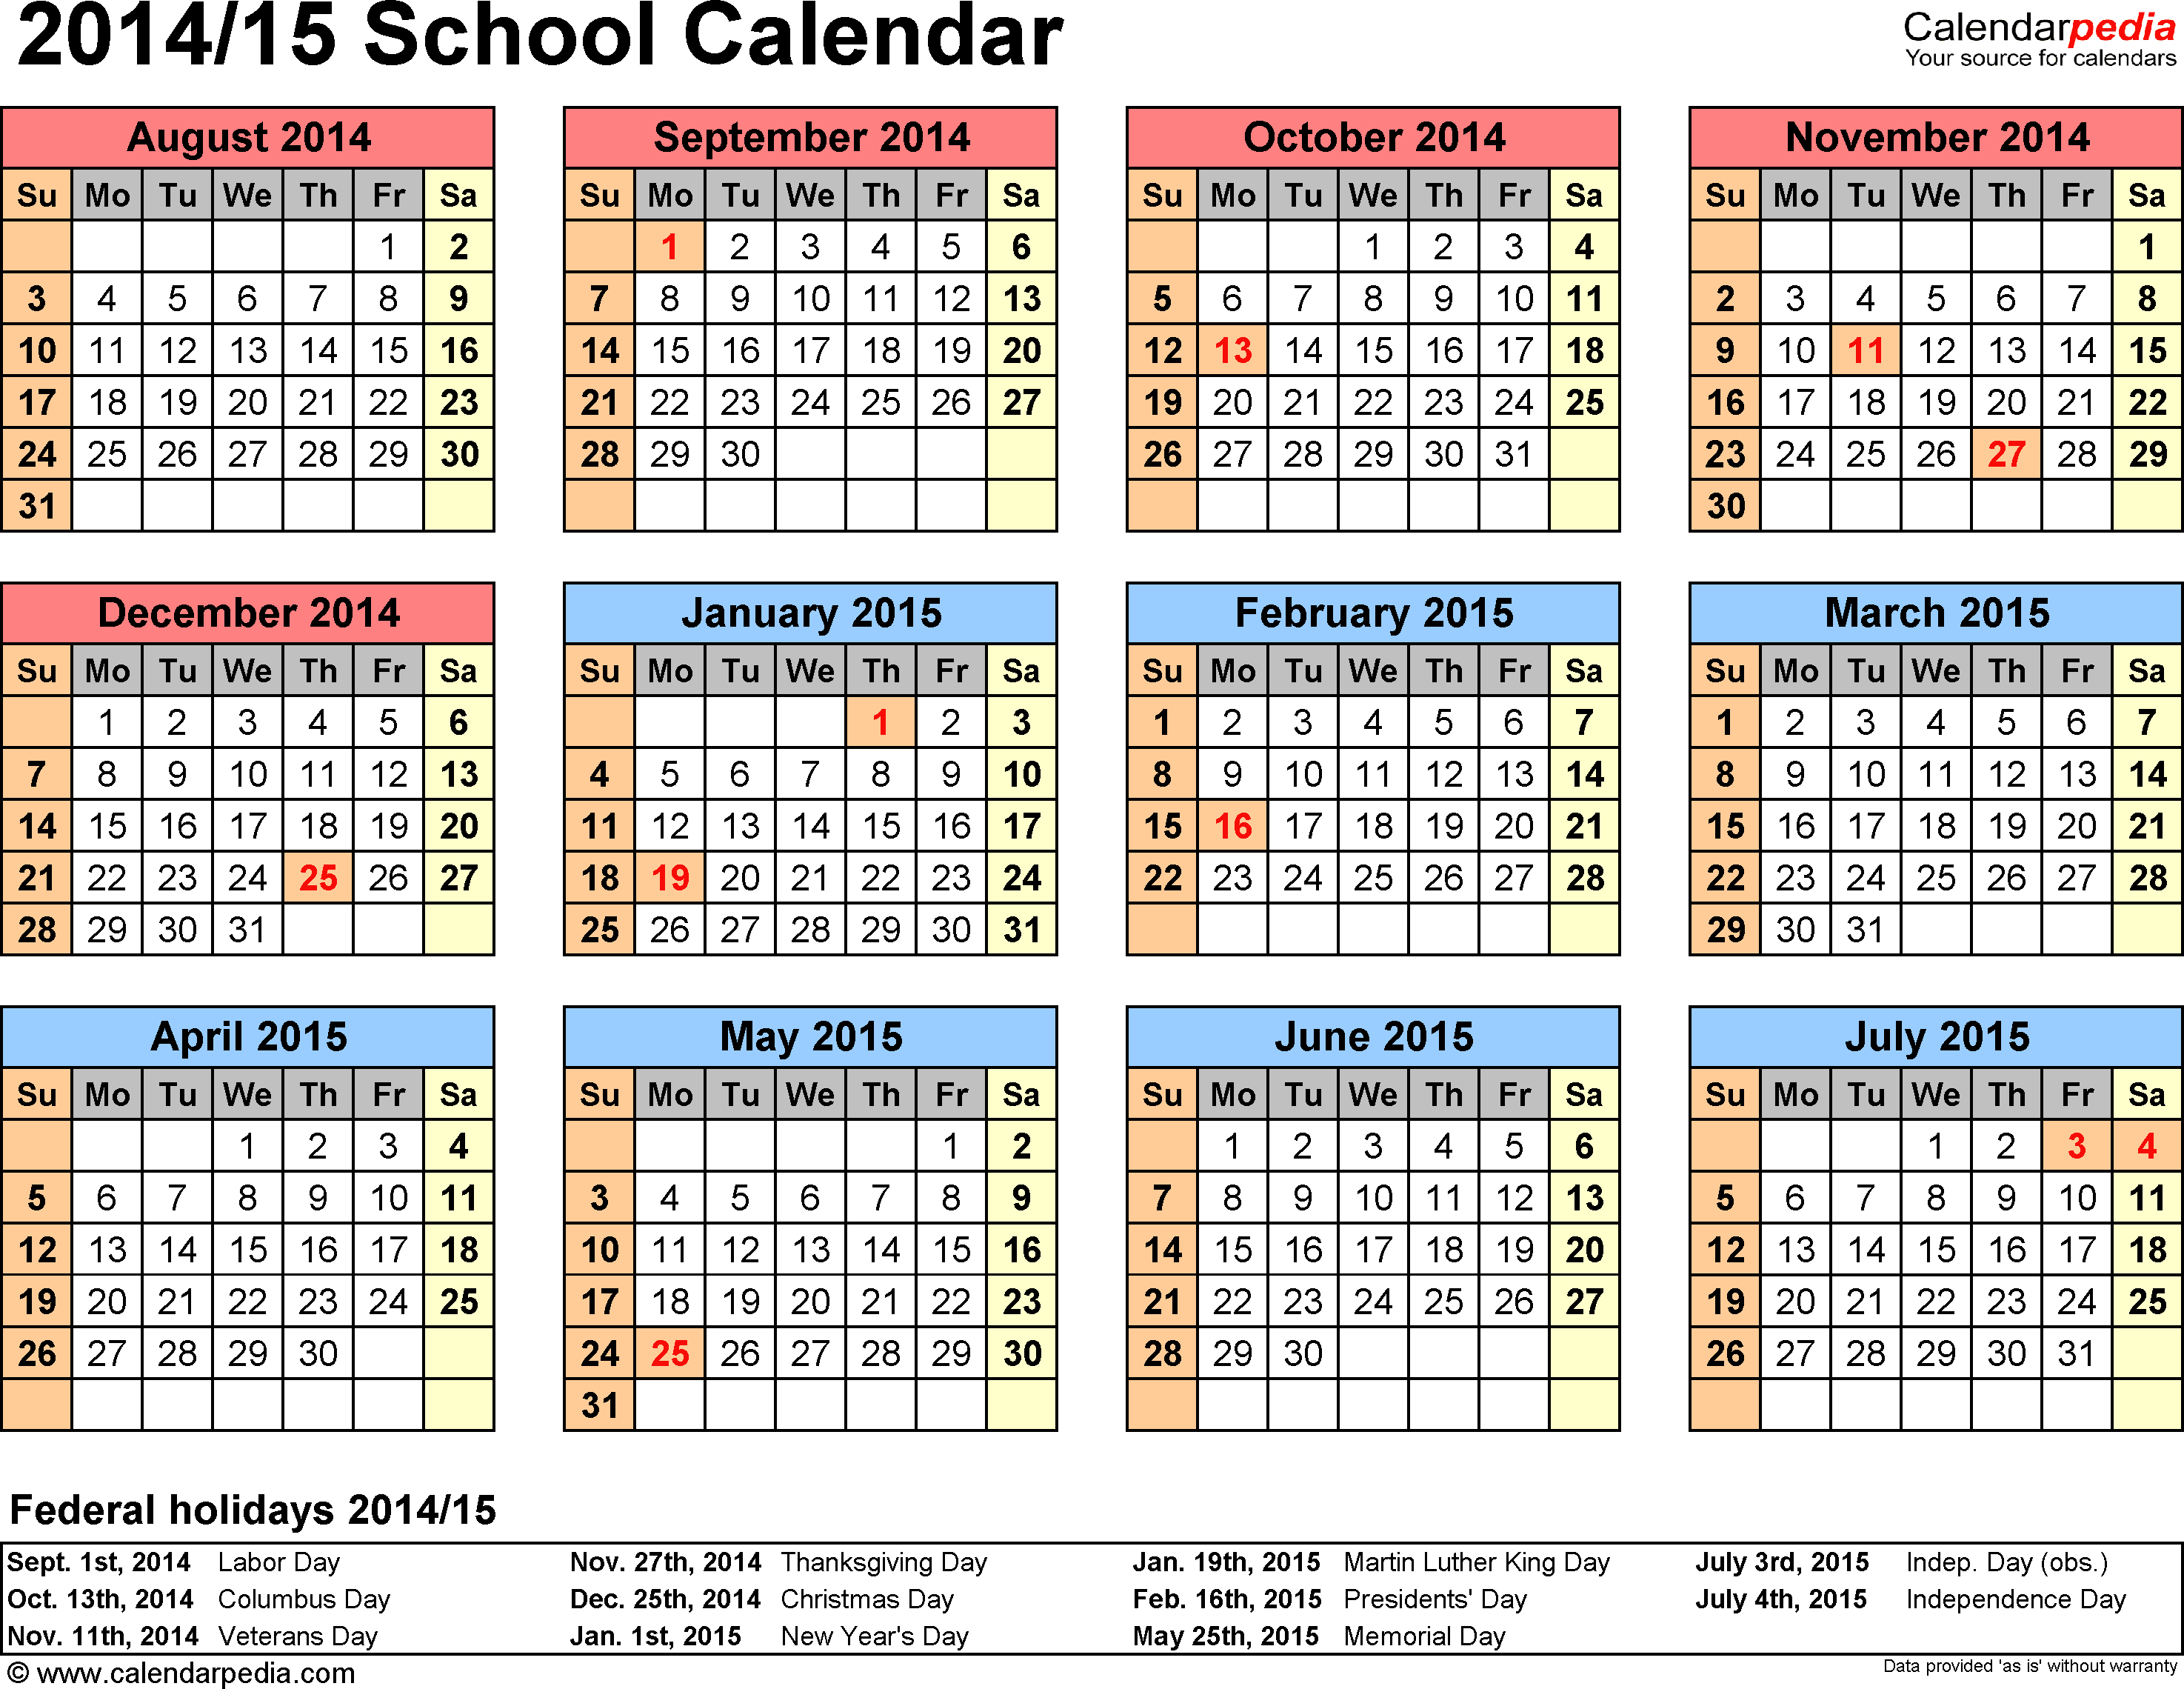 Template 4: School calendar 2014/15, for Microsoft Excel (.xlsx file), landscape, 1 page, year at a glance